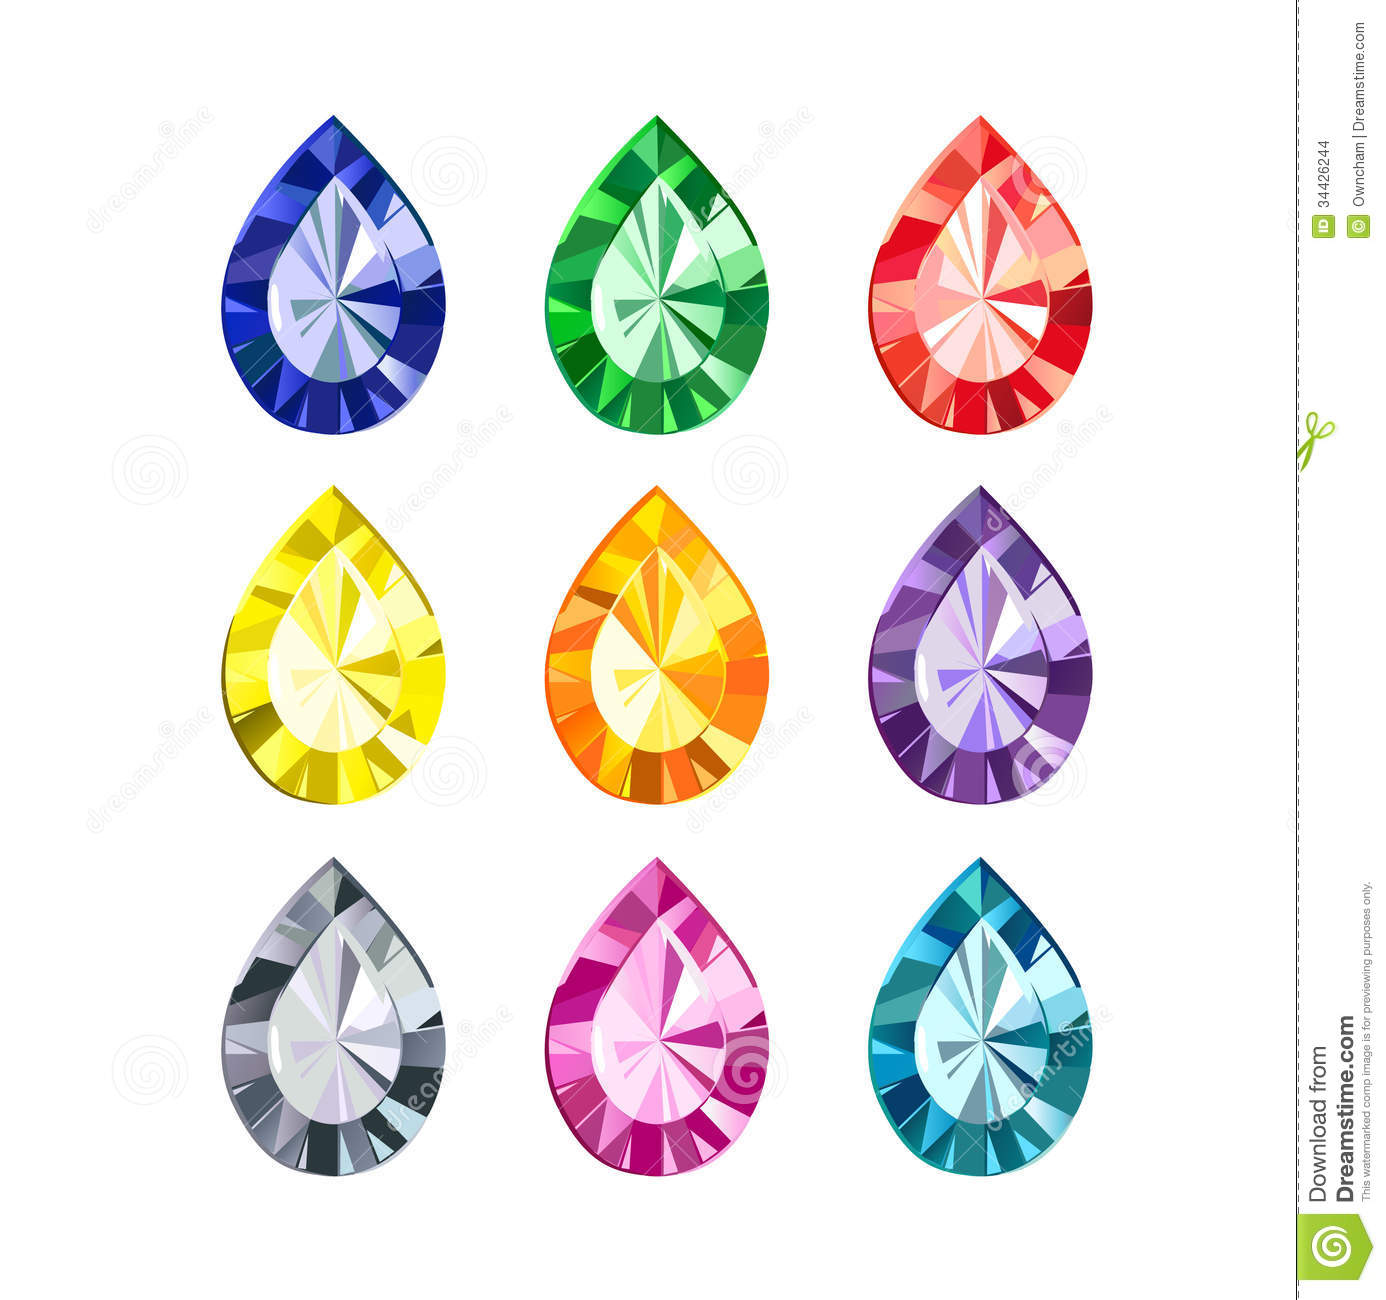 Jewels and gems clipart.